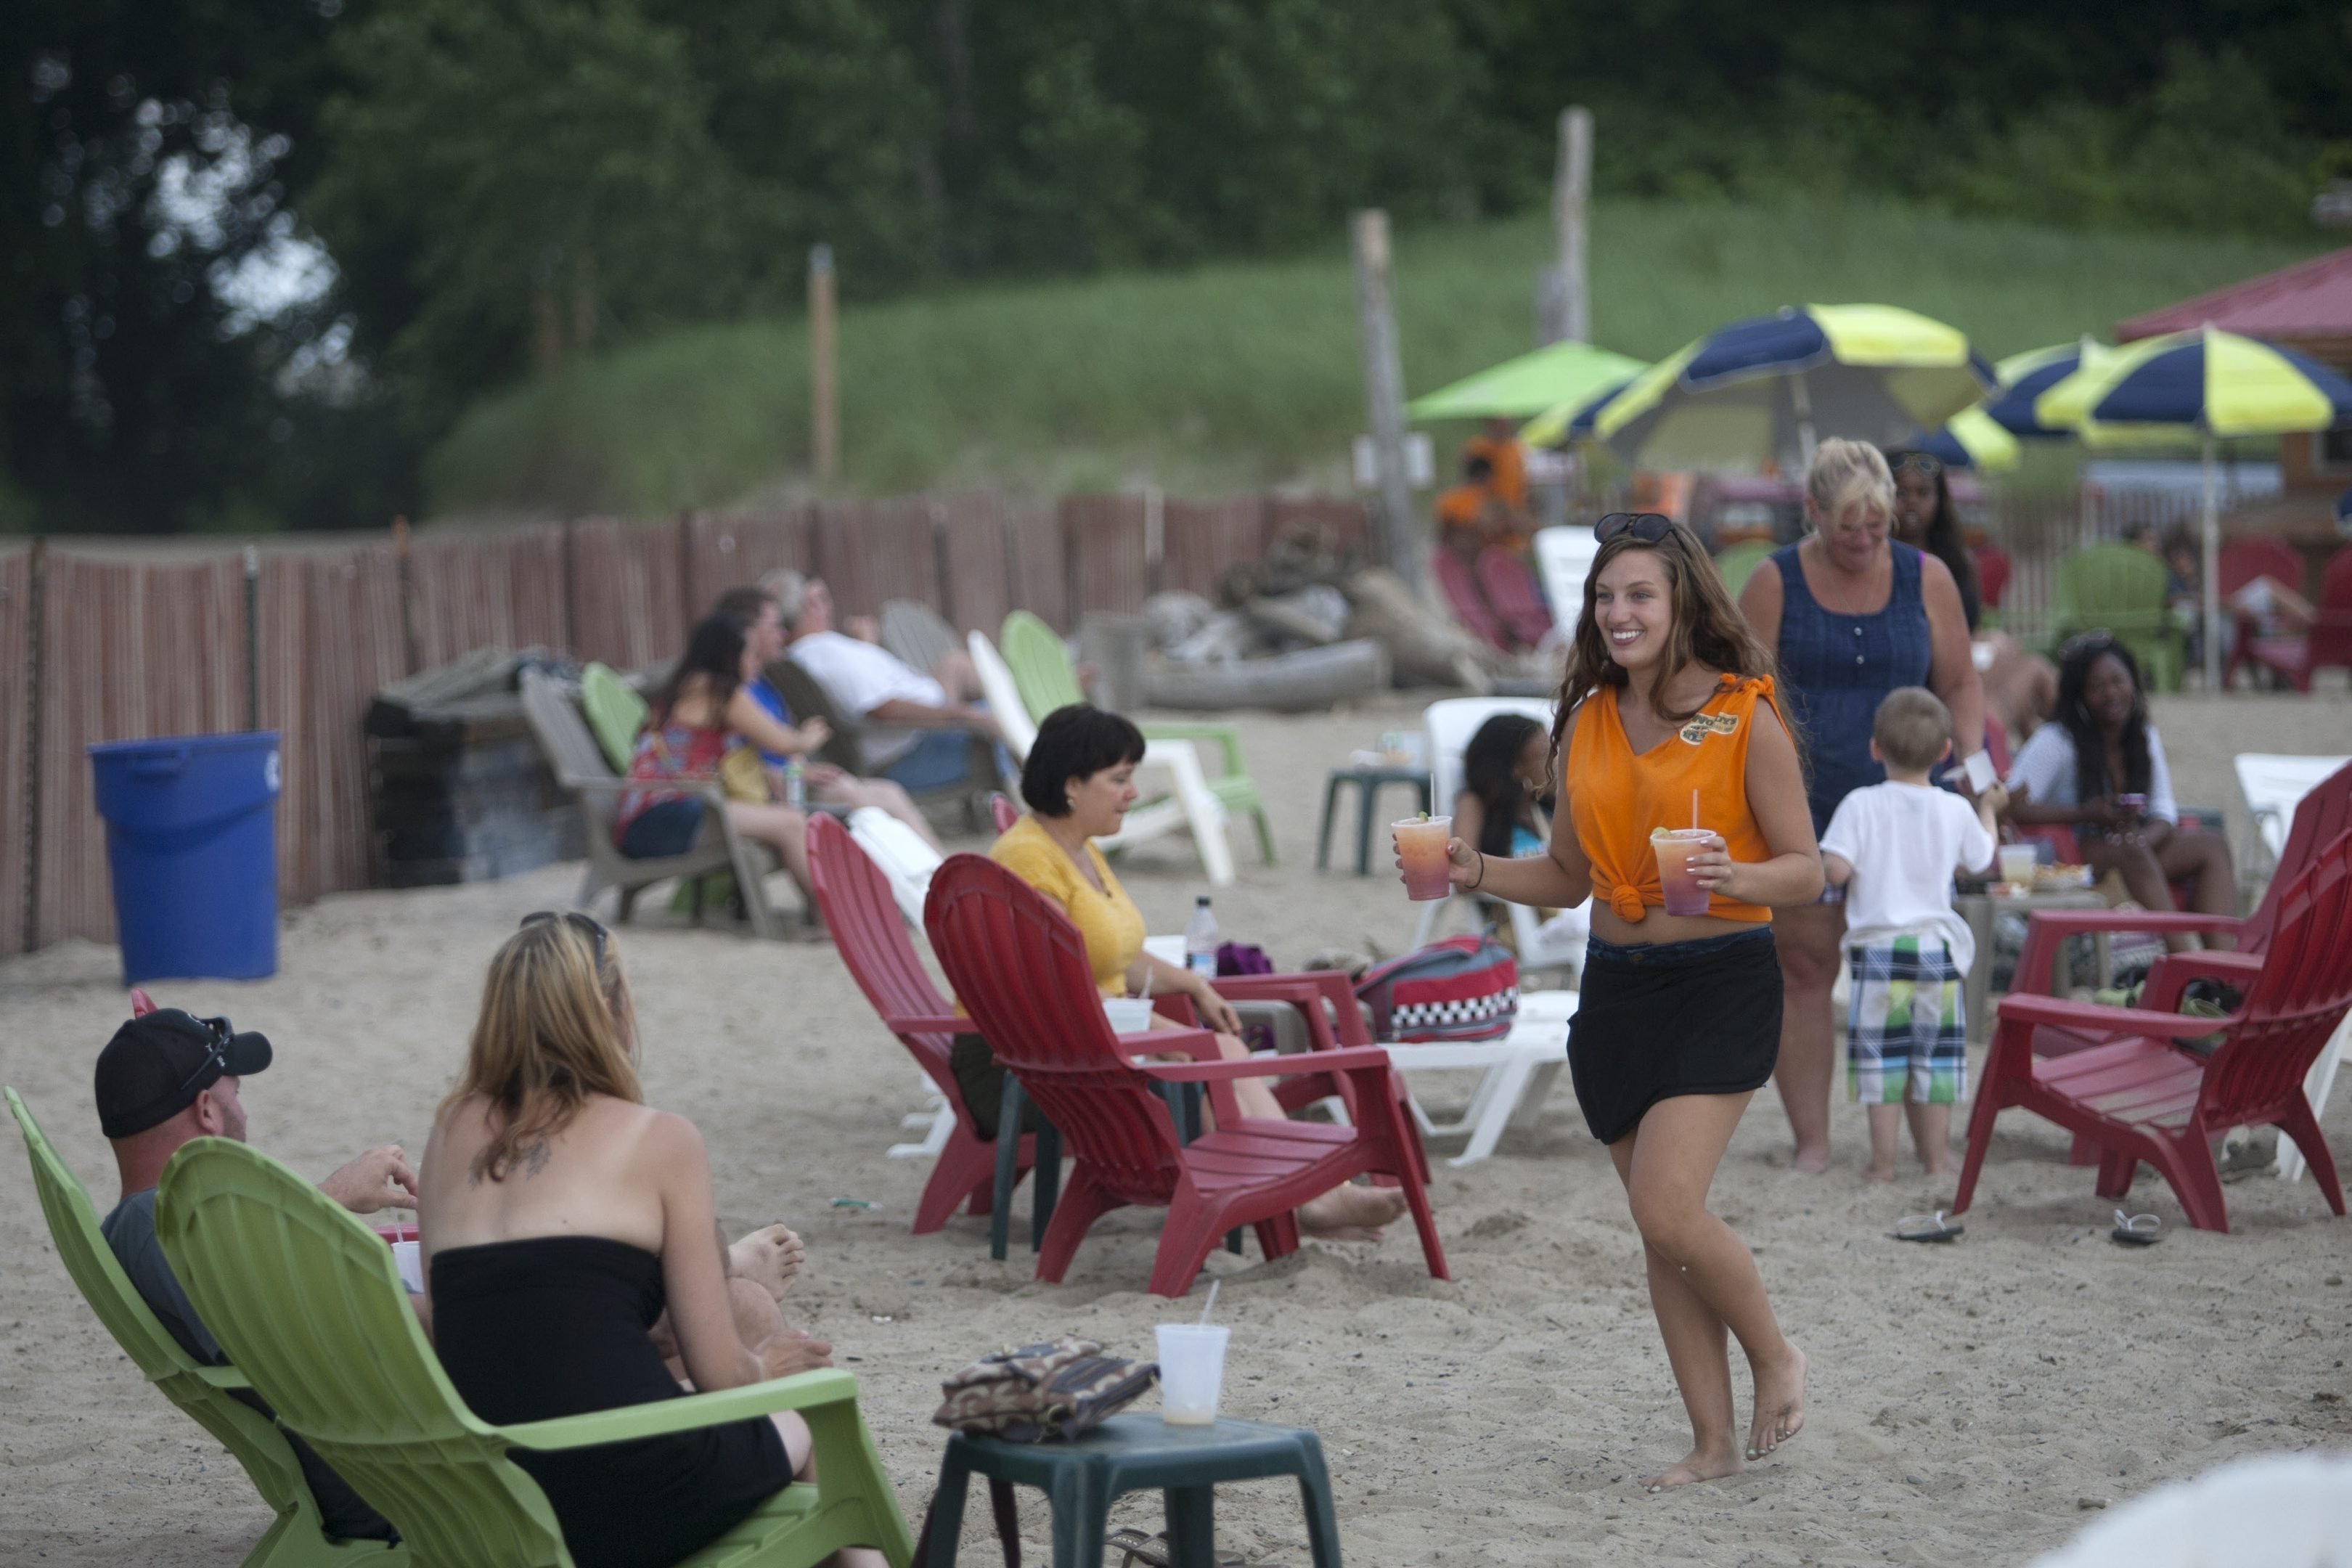 Woody's Beach Club and Taqueria combines one of the best beaches within 15 minutes of downtown Buffalo and an eatery serving up tacos, margaritas and more with a scene that transplants a bit of Baja California to the lakeshore.  (Matthew Masin/Buffalo News)Wood